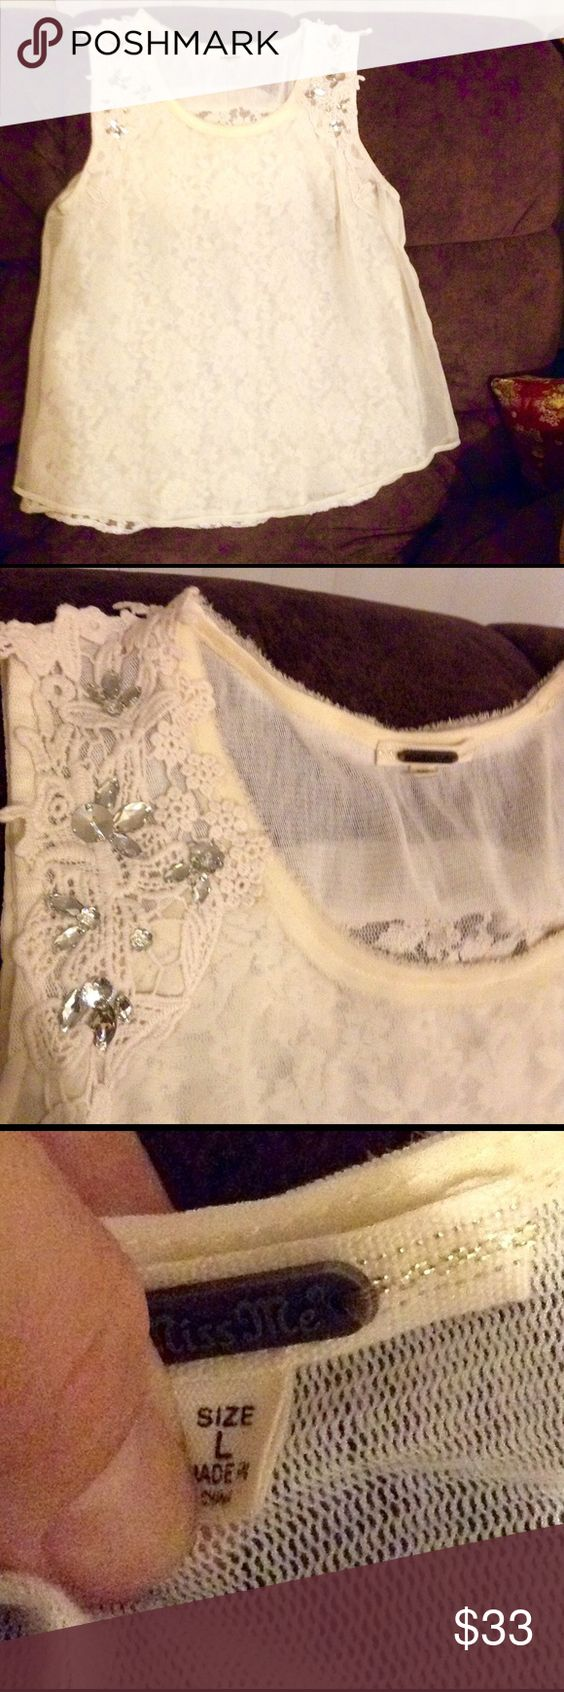 Beautiful Miss Me top Miss me new top beautiful ivory lace imbedded on inside with rindstone on shoulder beautiful top could be worn to any occasion only worn once miss Me Tops